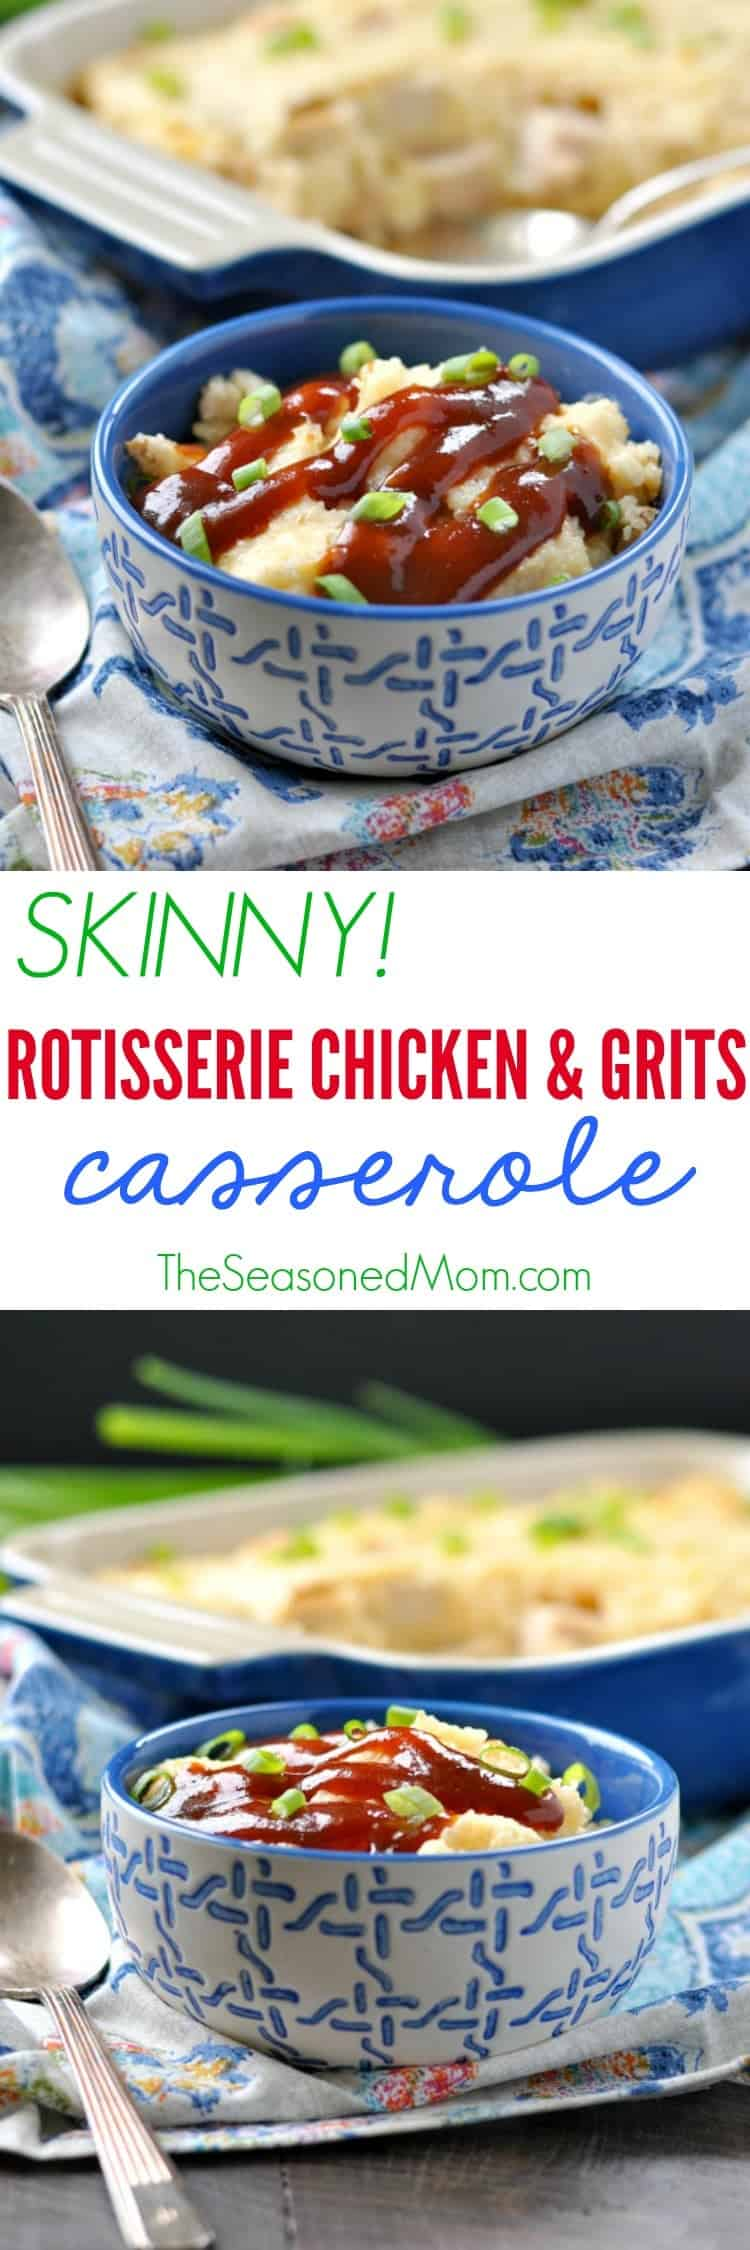 A classic Southern dish gets a healthy makeover in this easy Skinny Rotisserie Chicken and Grits Casserole! The combination of chicken, cheese, and barbecue sauce makes this a family-friendly weeknight dinner -- and best of all, this low-calorie dish is ready for the oven in only 15 minutes!